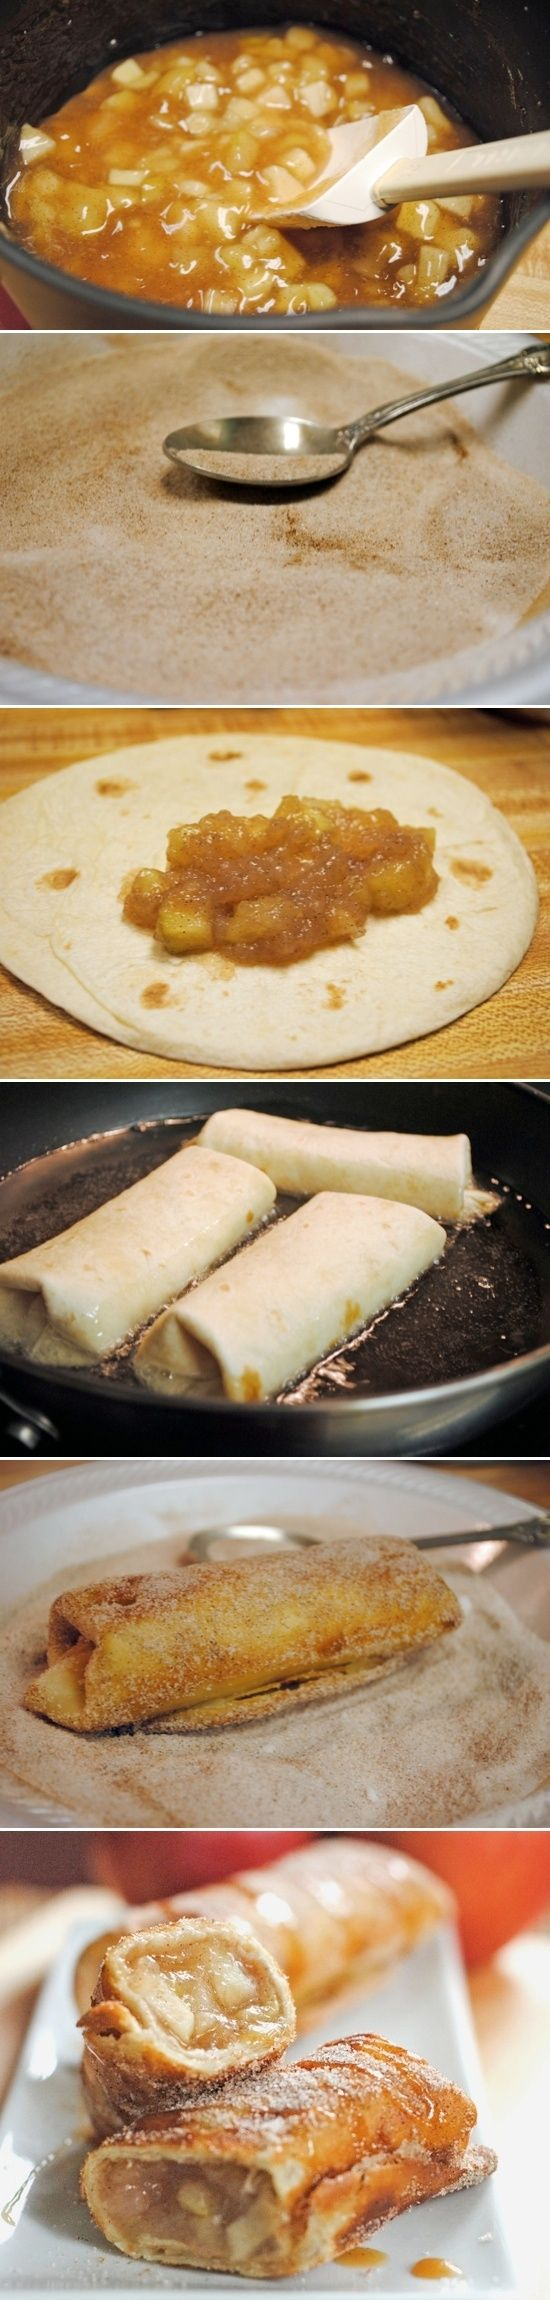 apple cinnamon chimichangas by tcklol